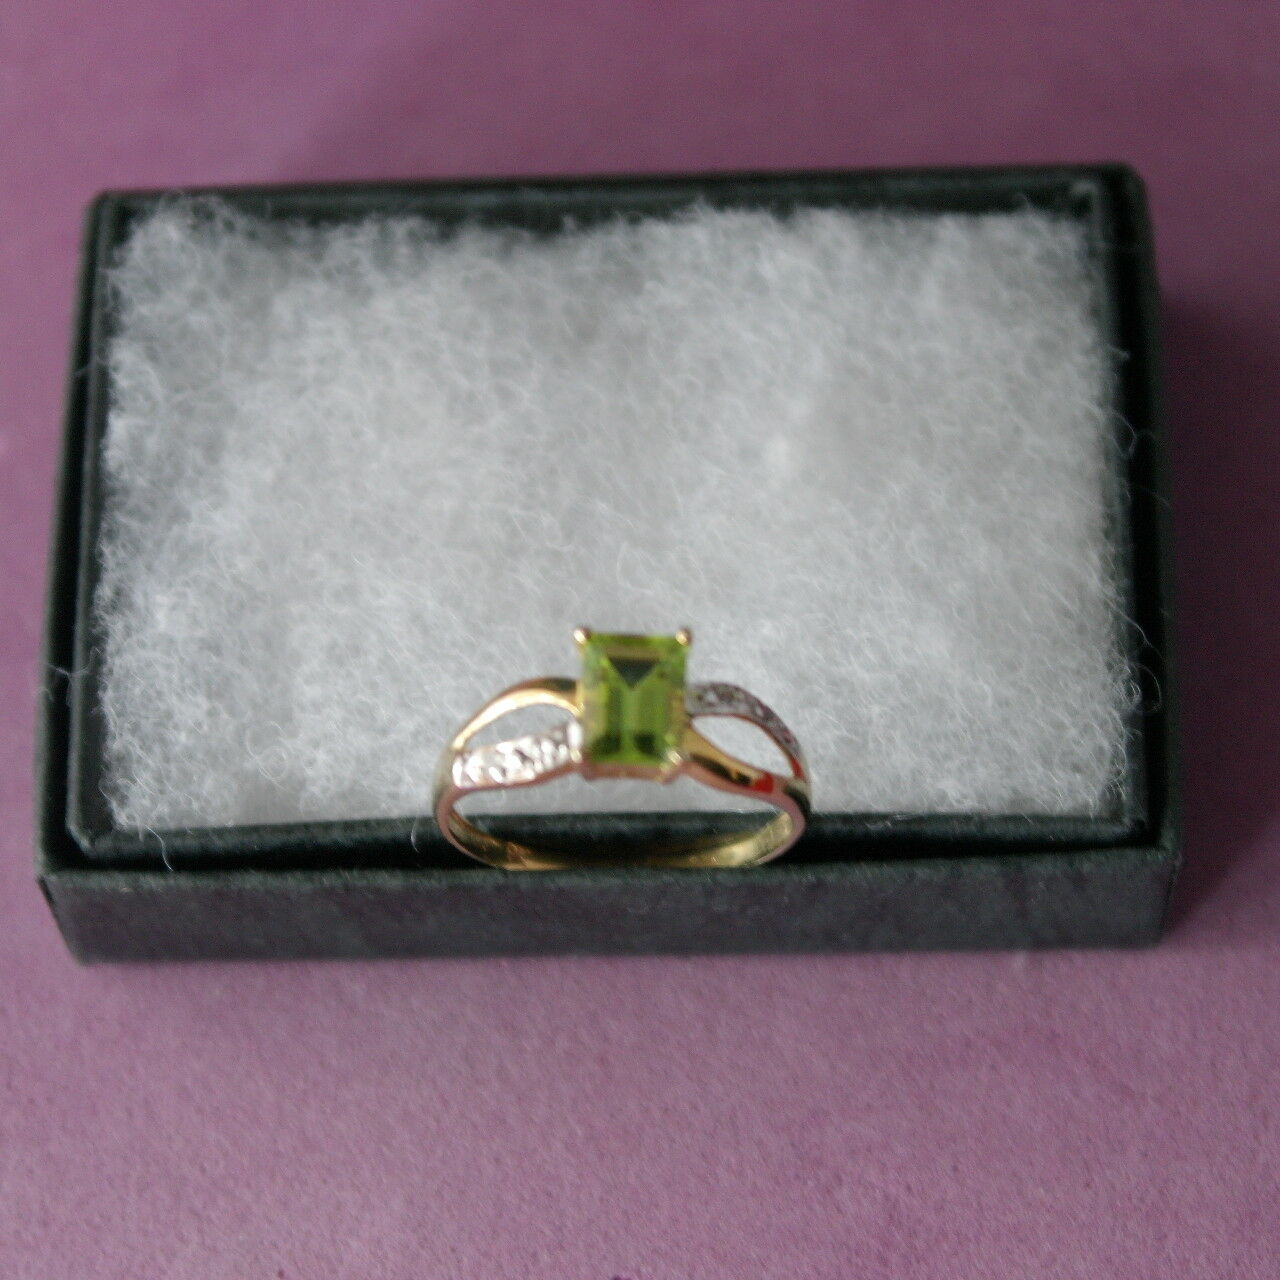 BEAUTIFUL 9CT YELLOW gold NATURAL PERIDOT & DIAMOND RING SIZE O1\2 IN GIFT BOX